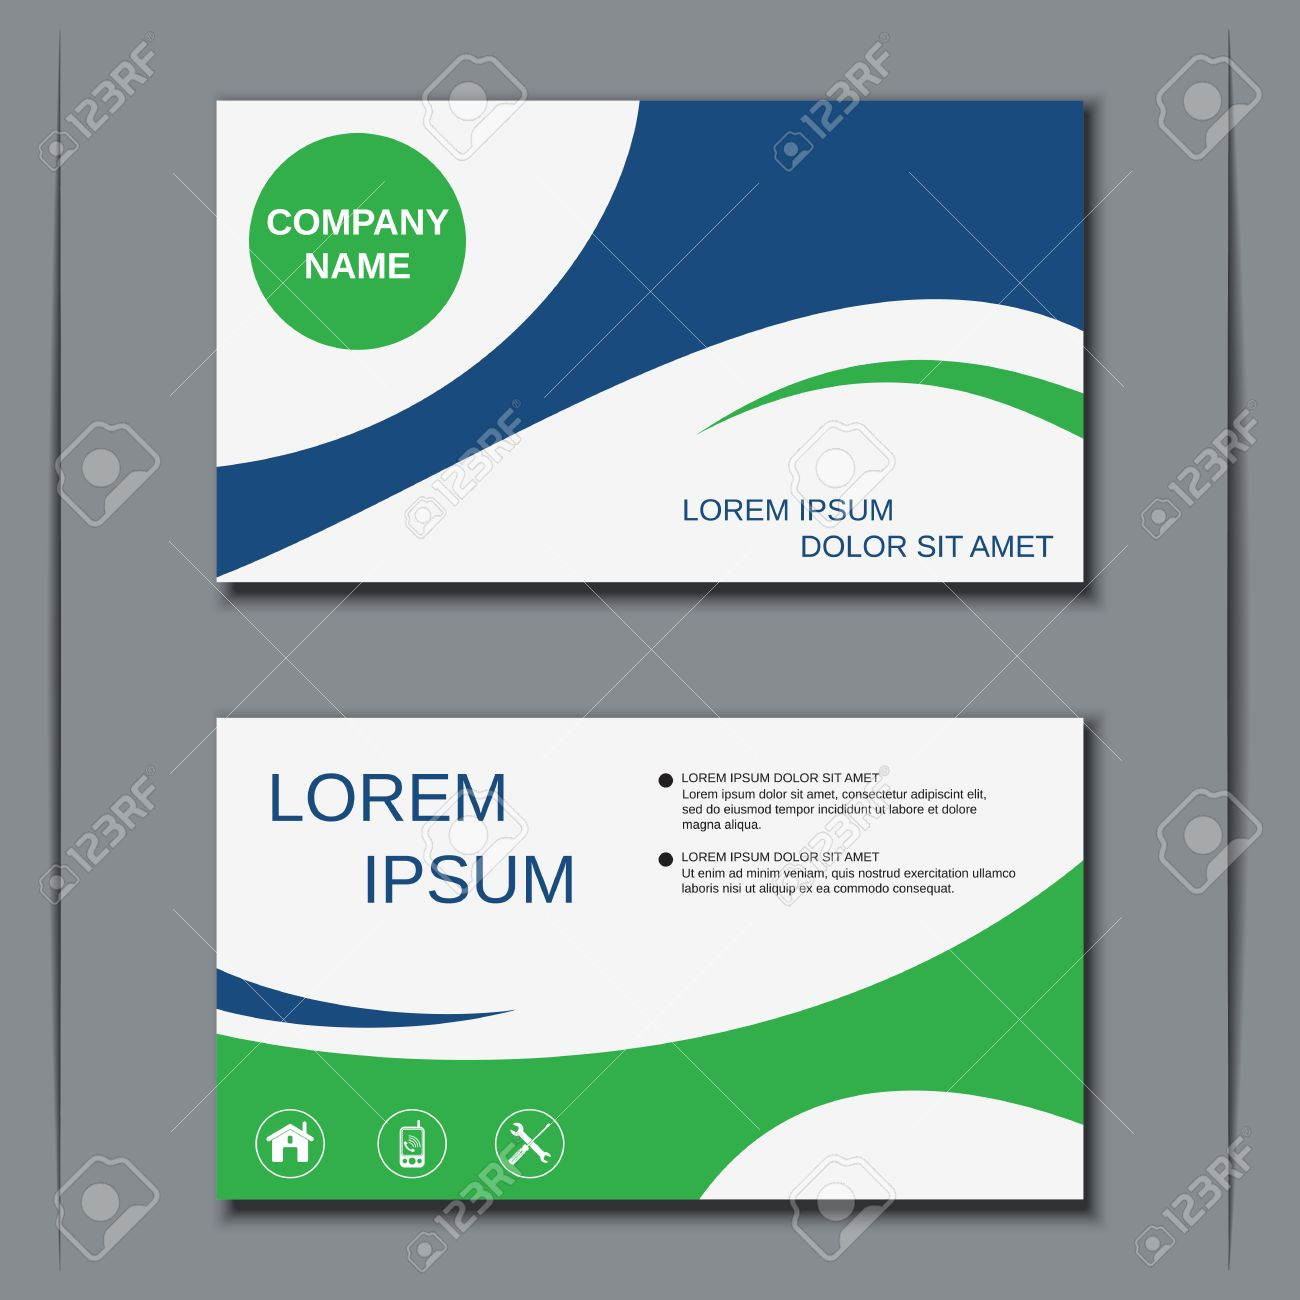 Modern business visiting card design template royalty free cliparts modern business visiting card design template stock vector 46902788 cheaphphosting Images